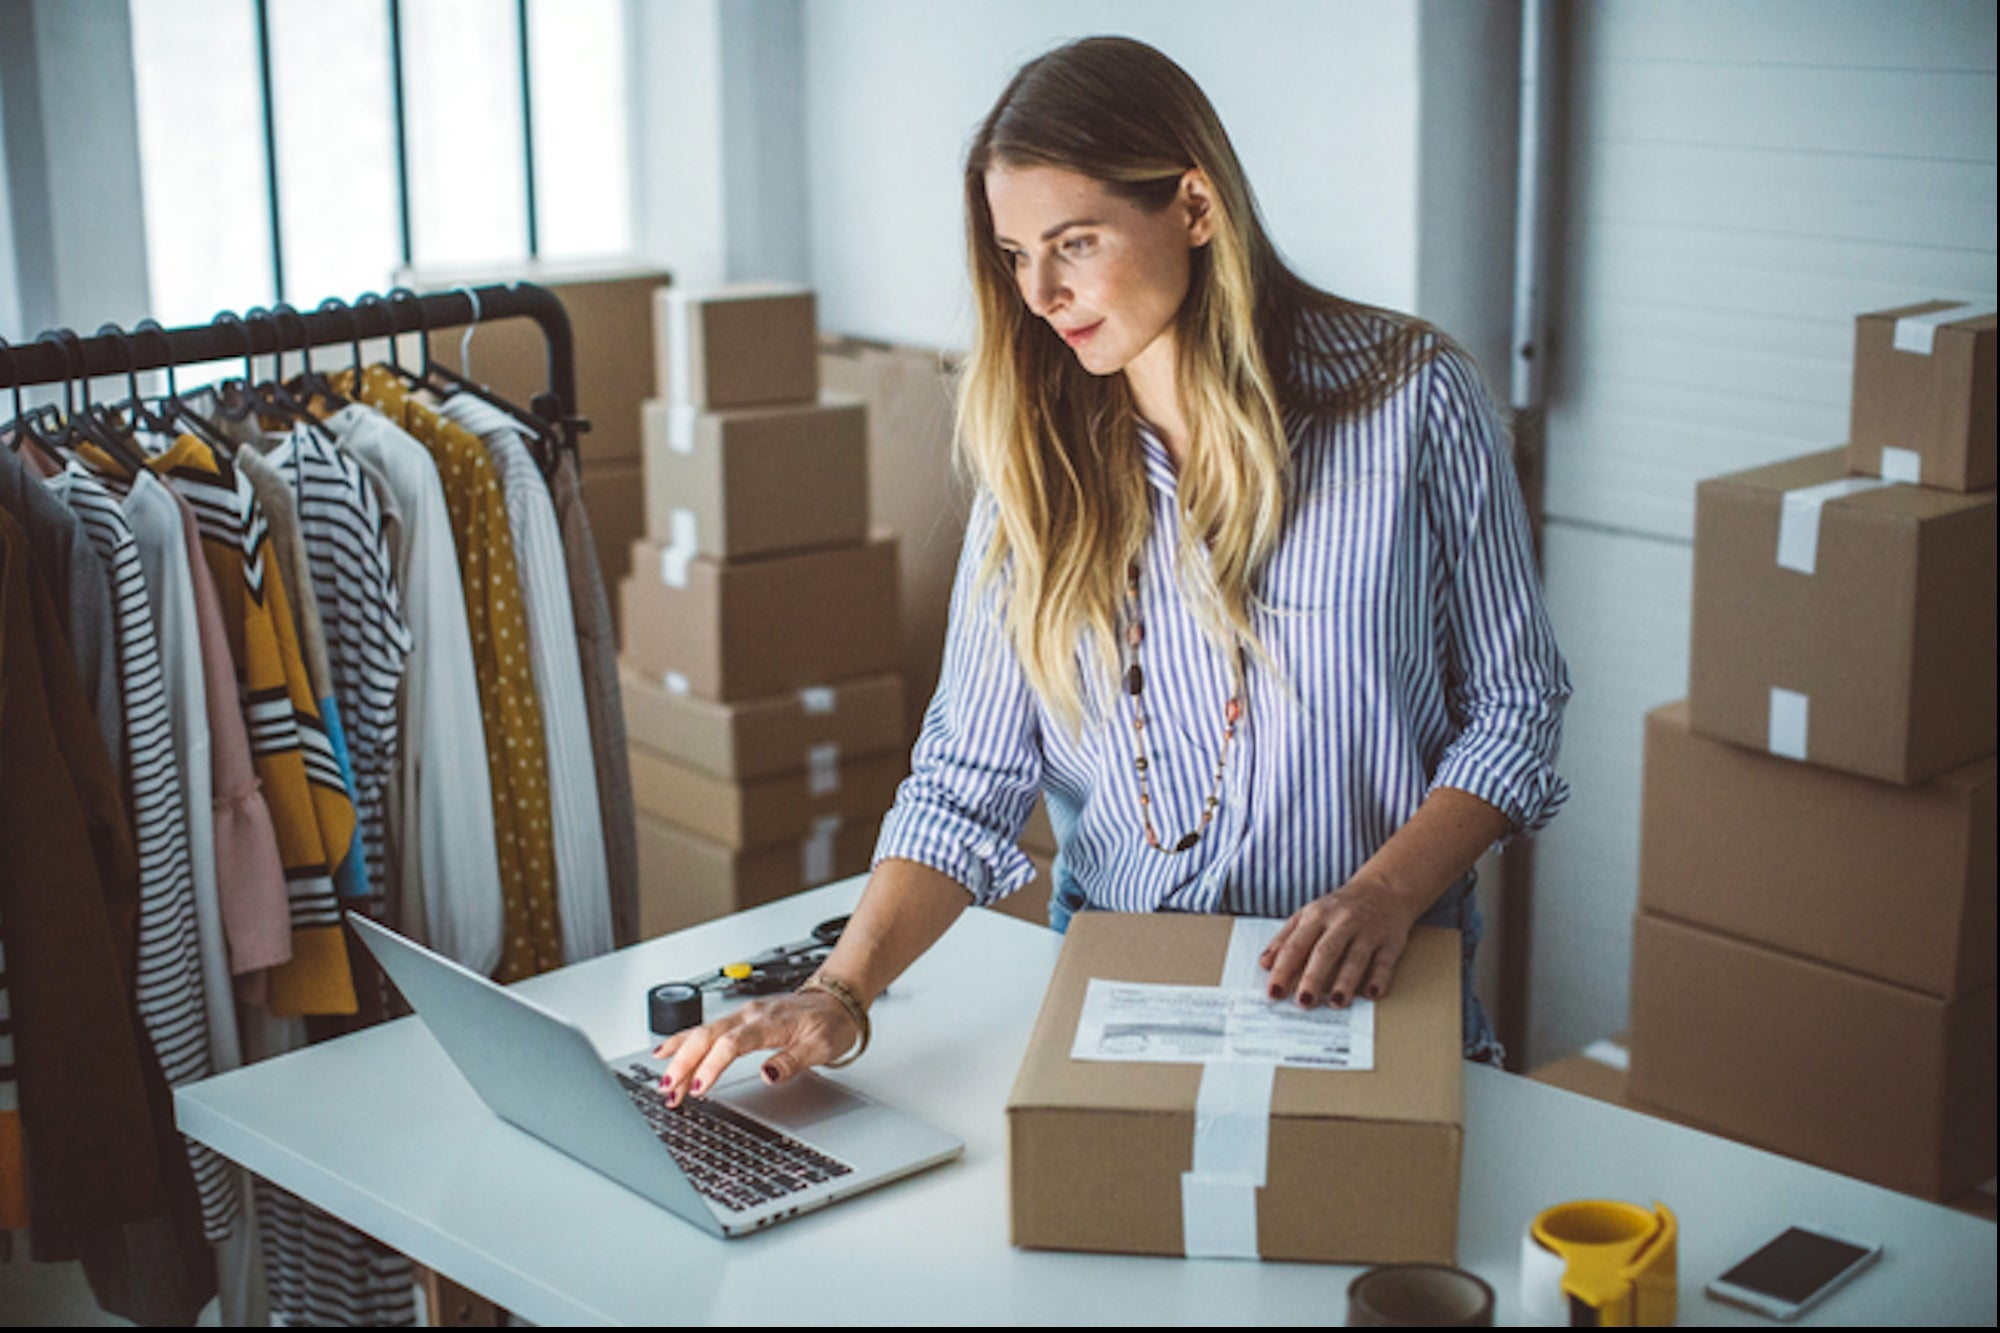 Starting an E-commerce Business? Here's How to Buy in Bulk at Great Prices.